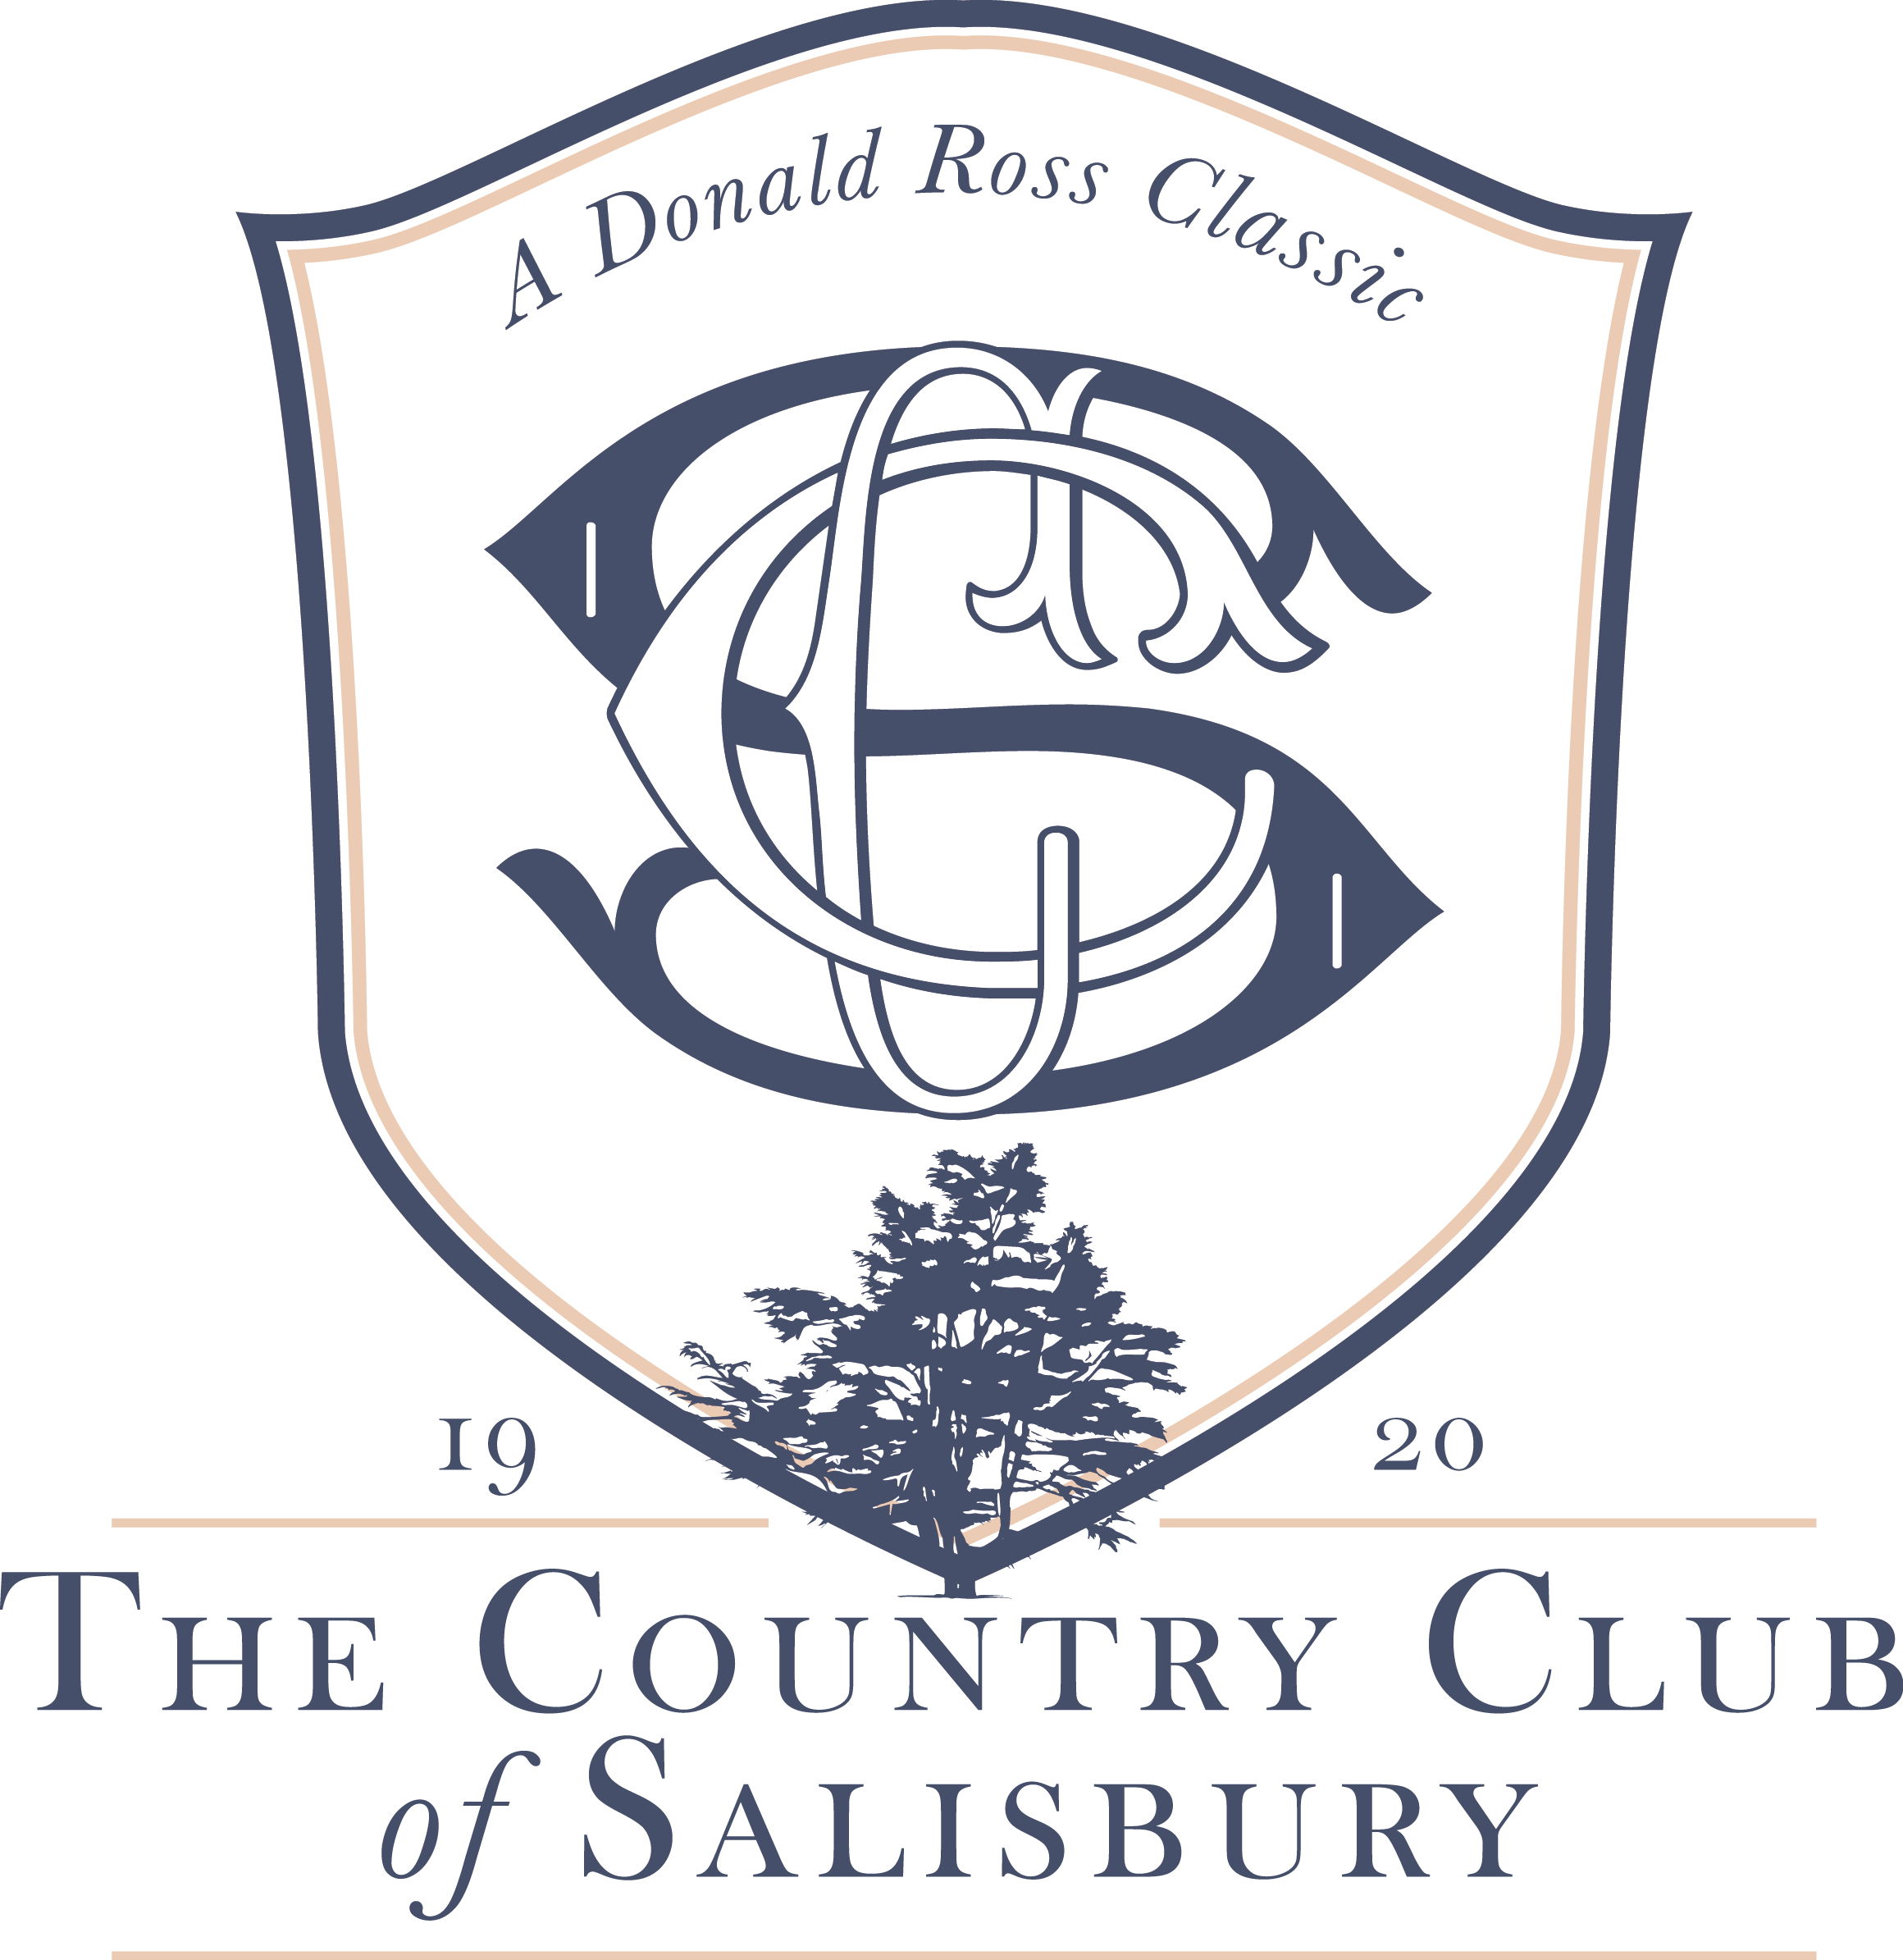 The Country Club of Salisbury | Donald Ross Design